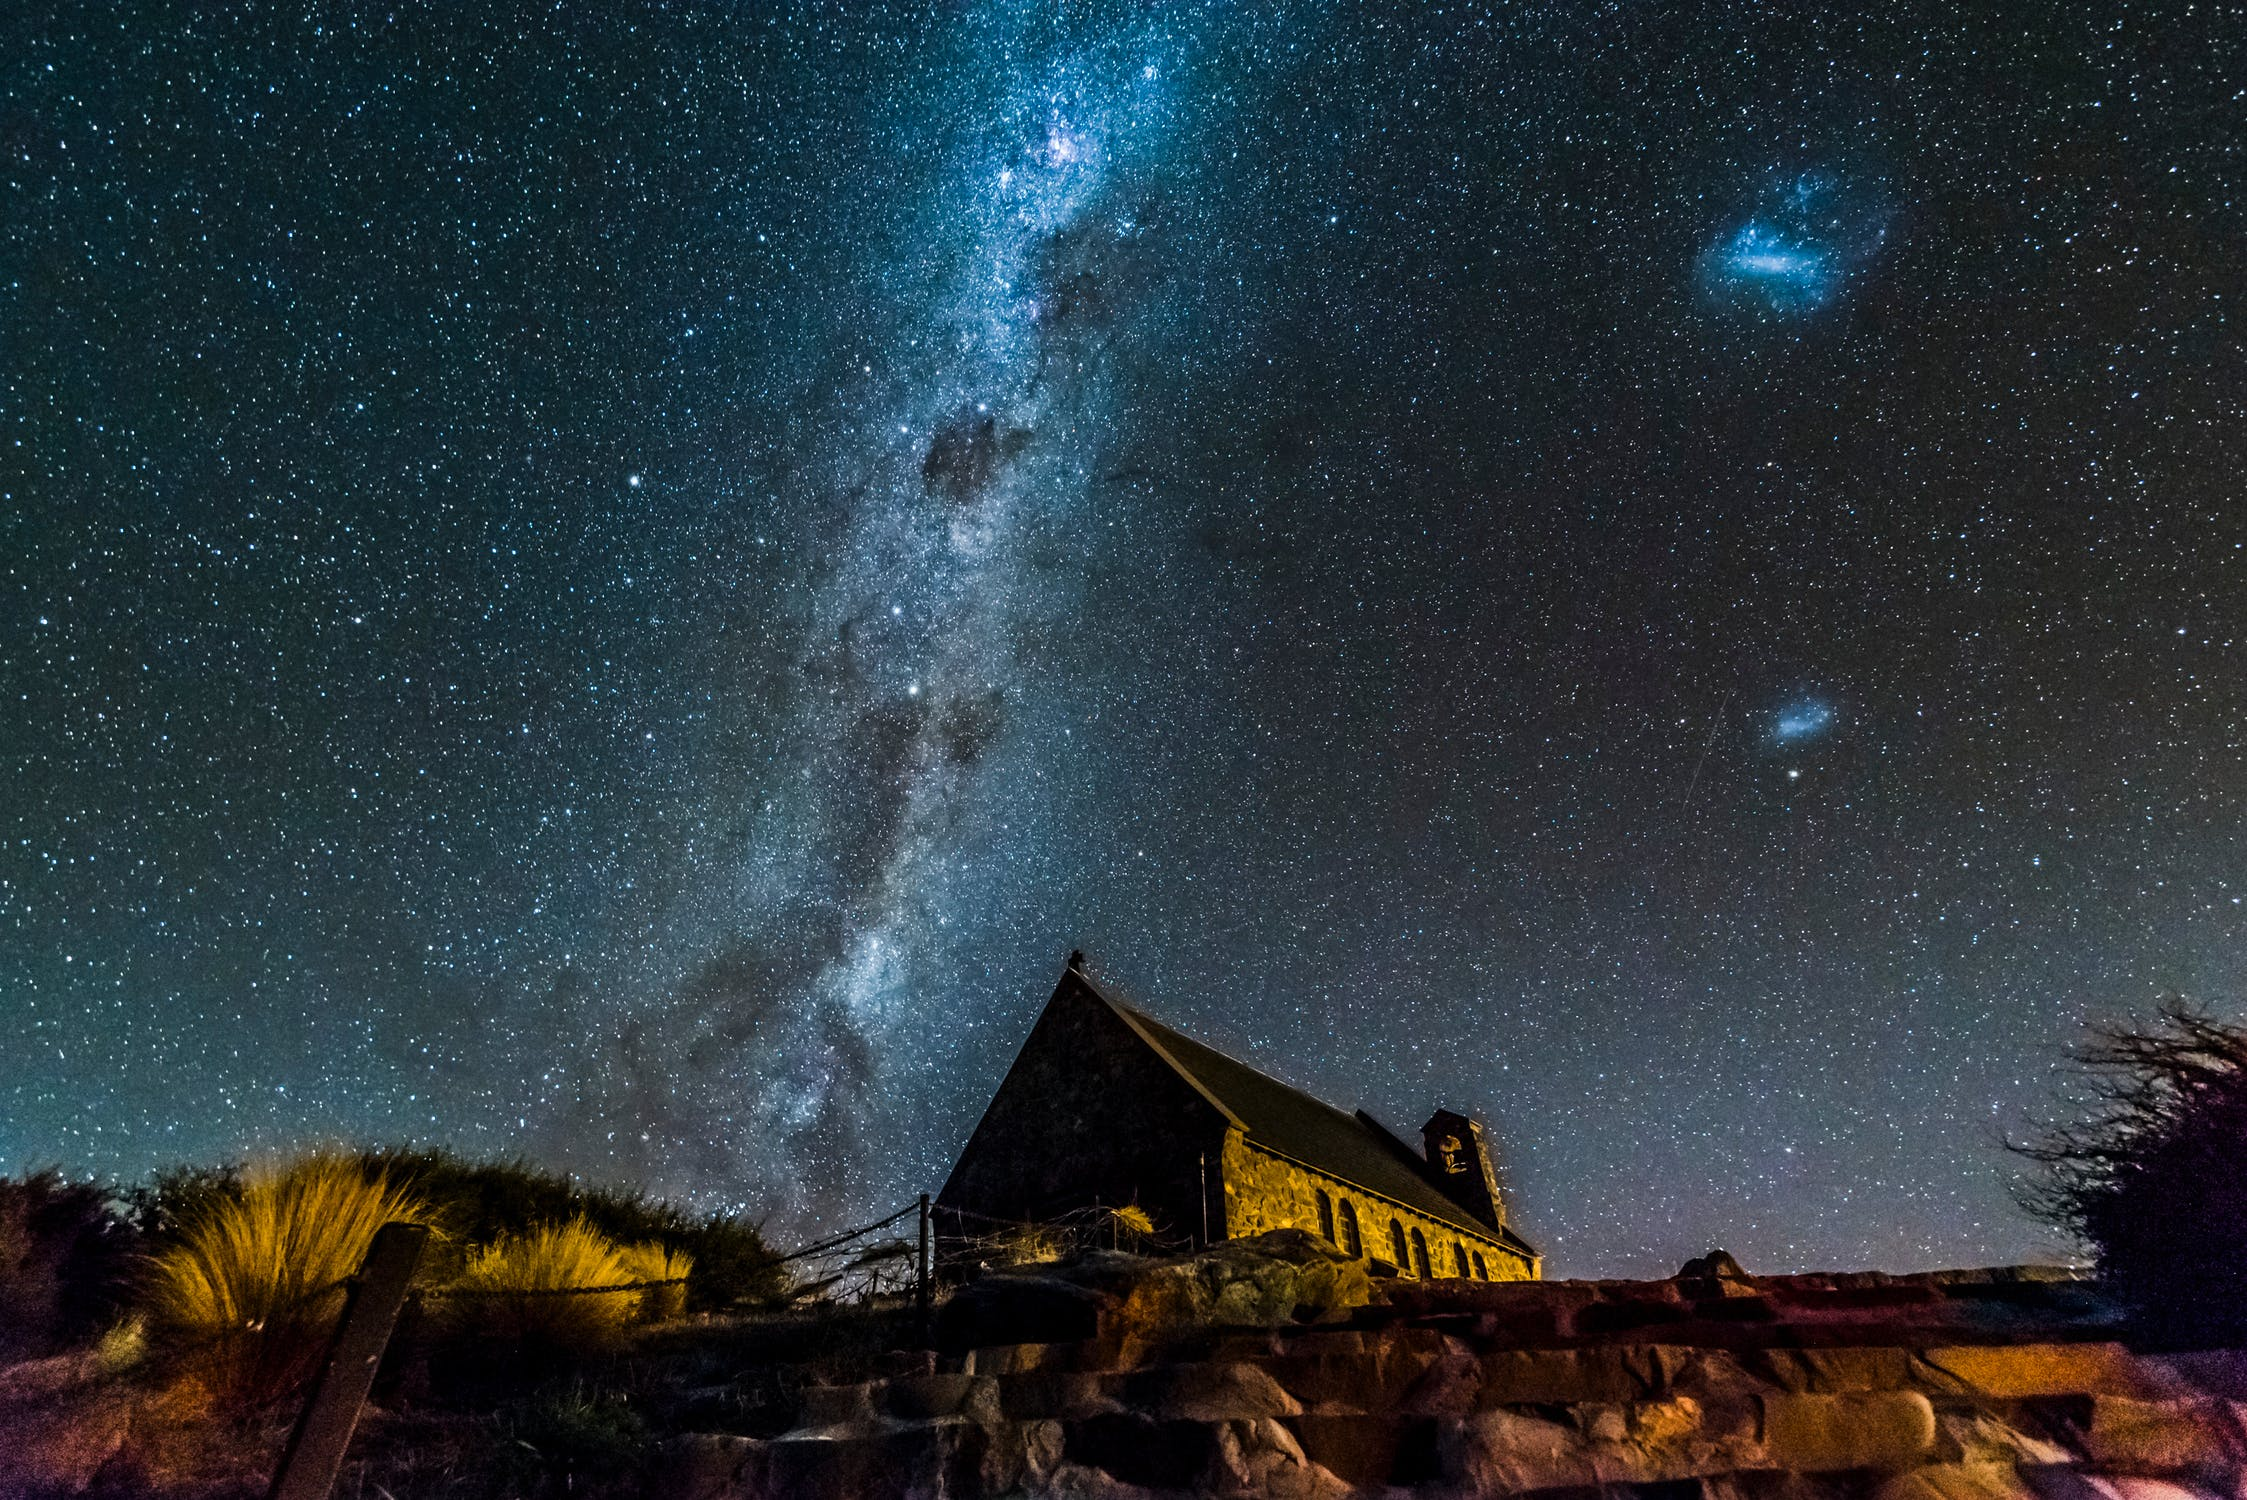 Are Asteroids, Meteors, and Space Debris Covered By Home Insurance